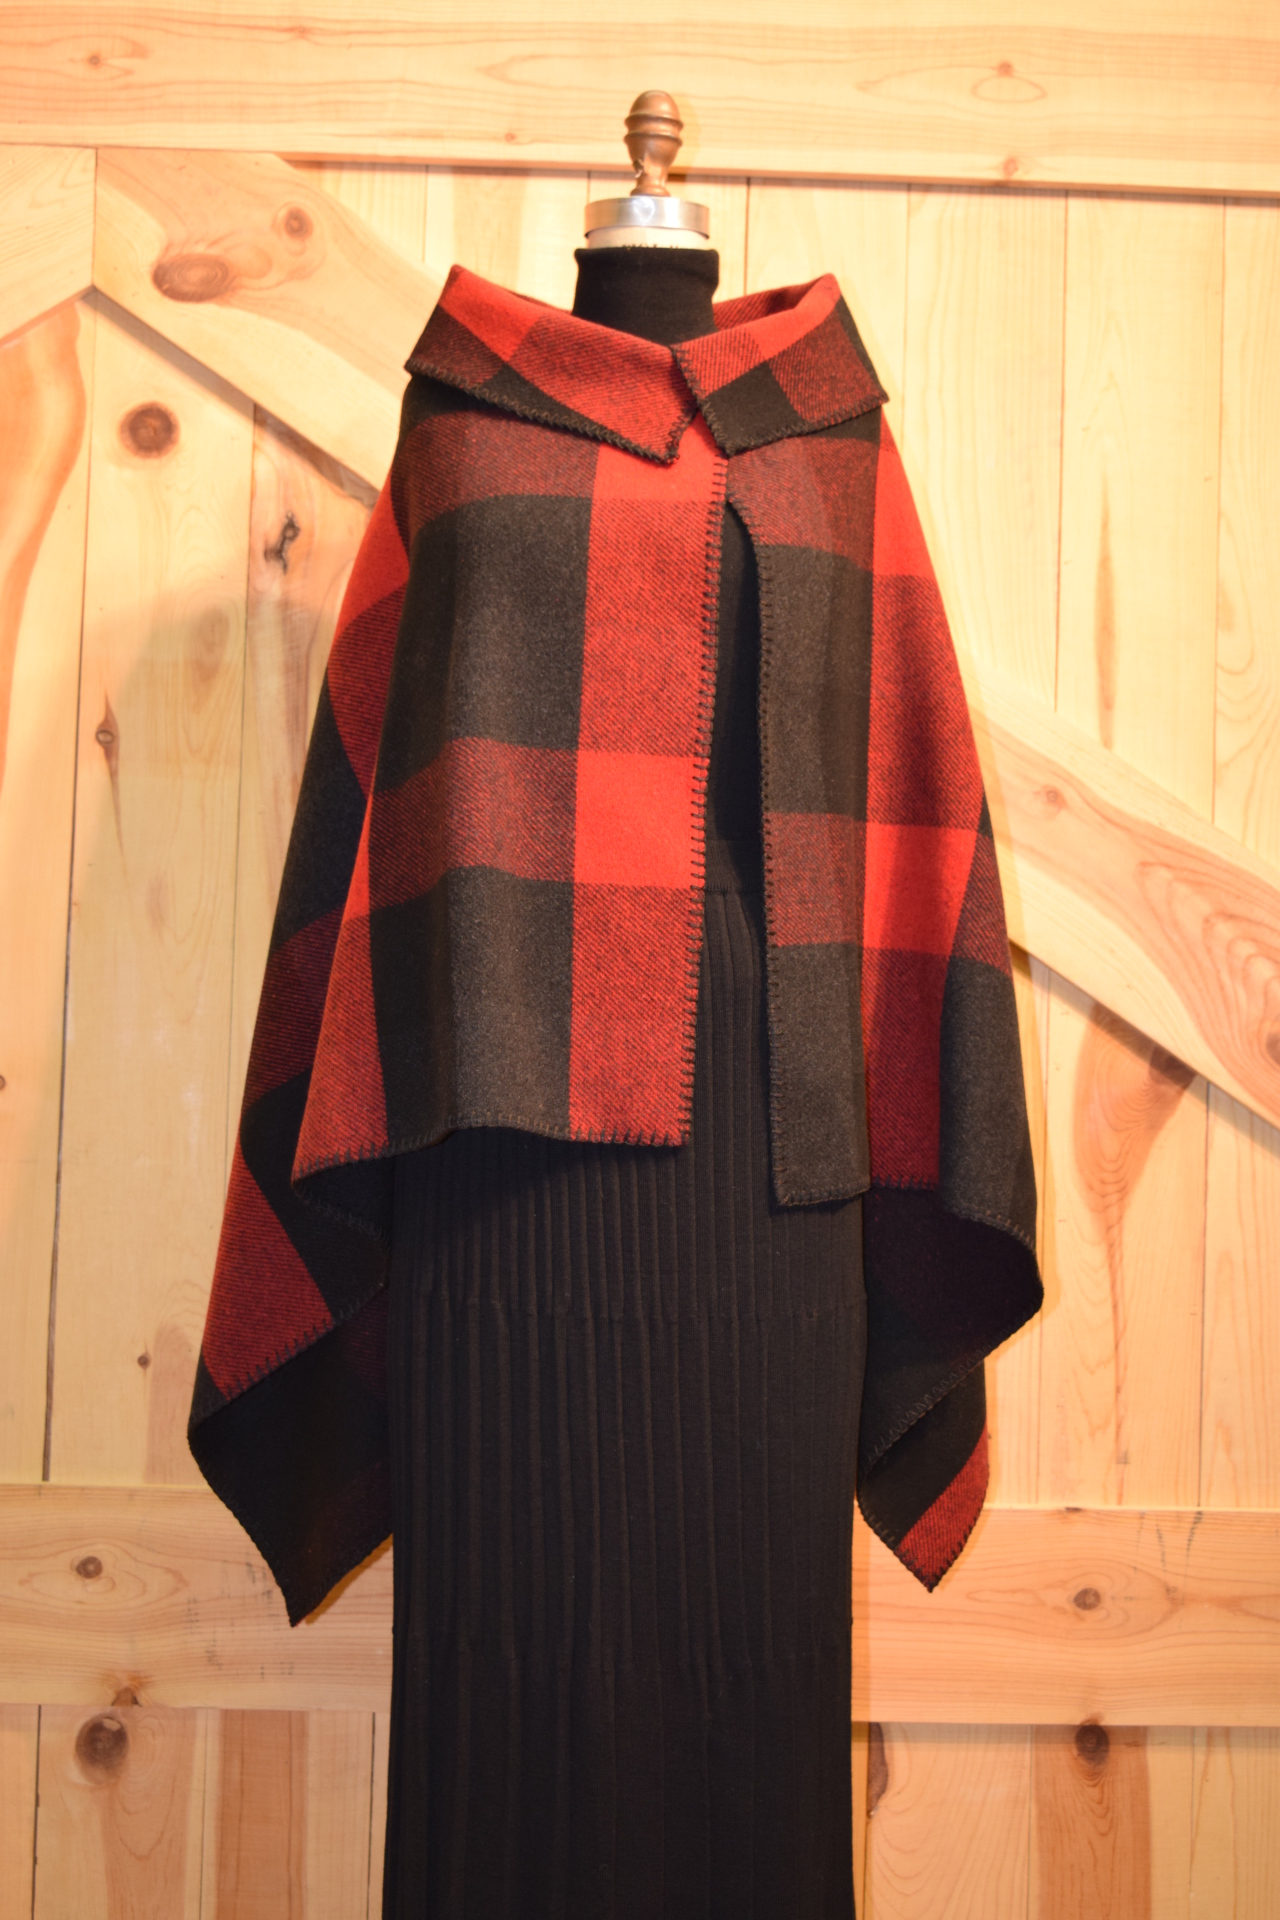 105BPR - RED BUFFALO PLAID ASYMETRICAL CAPE - O/S $119.95 - SALE $79.95